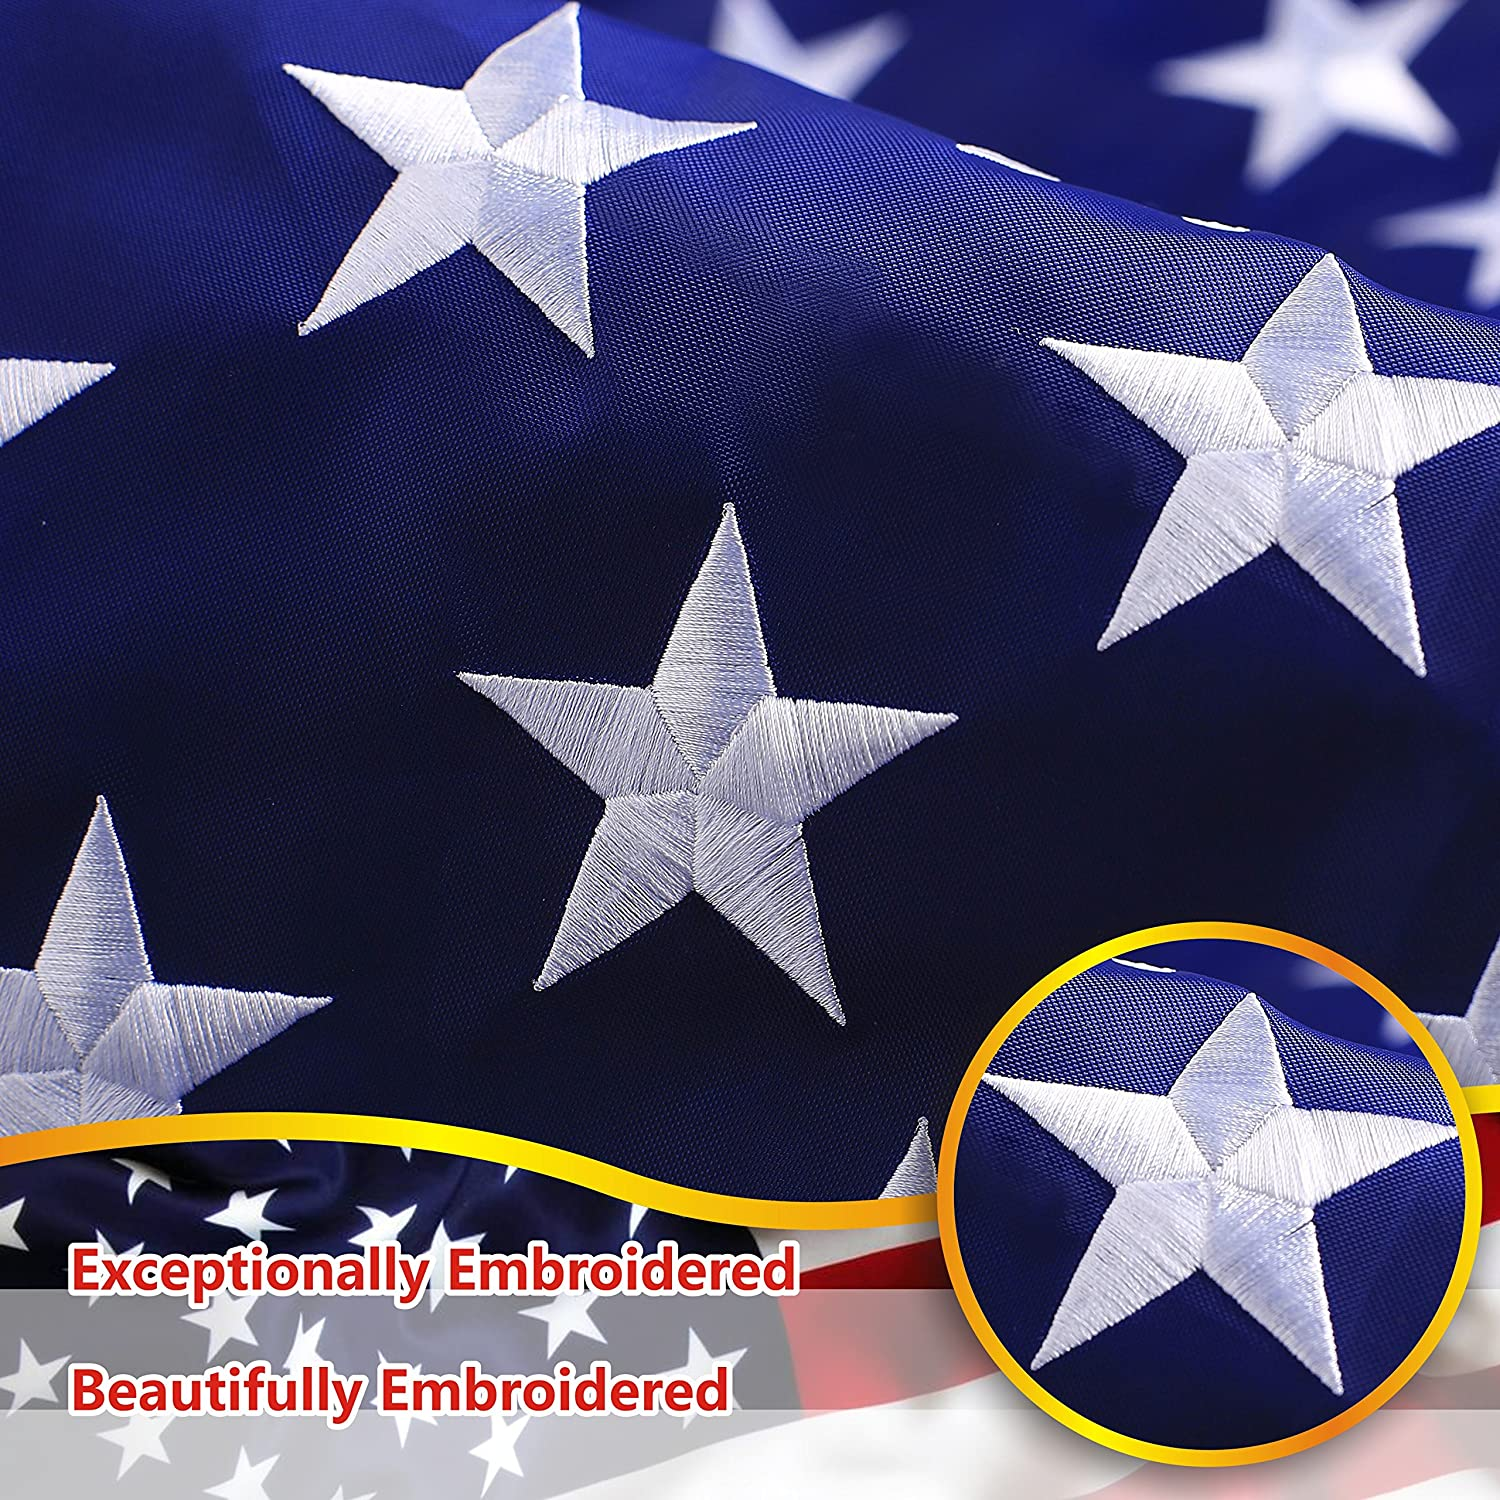 G128 - American USA US Flag 2x3 ft Deluxe Embroidered Stars Sewn Stripes Brass Grommets Durable Oxford 240D Polyester Indoor or Outdoor Use G128 LLC G128-FLG-210D-2x3ft